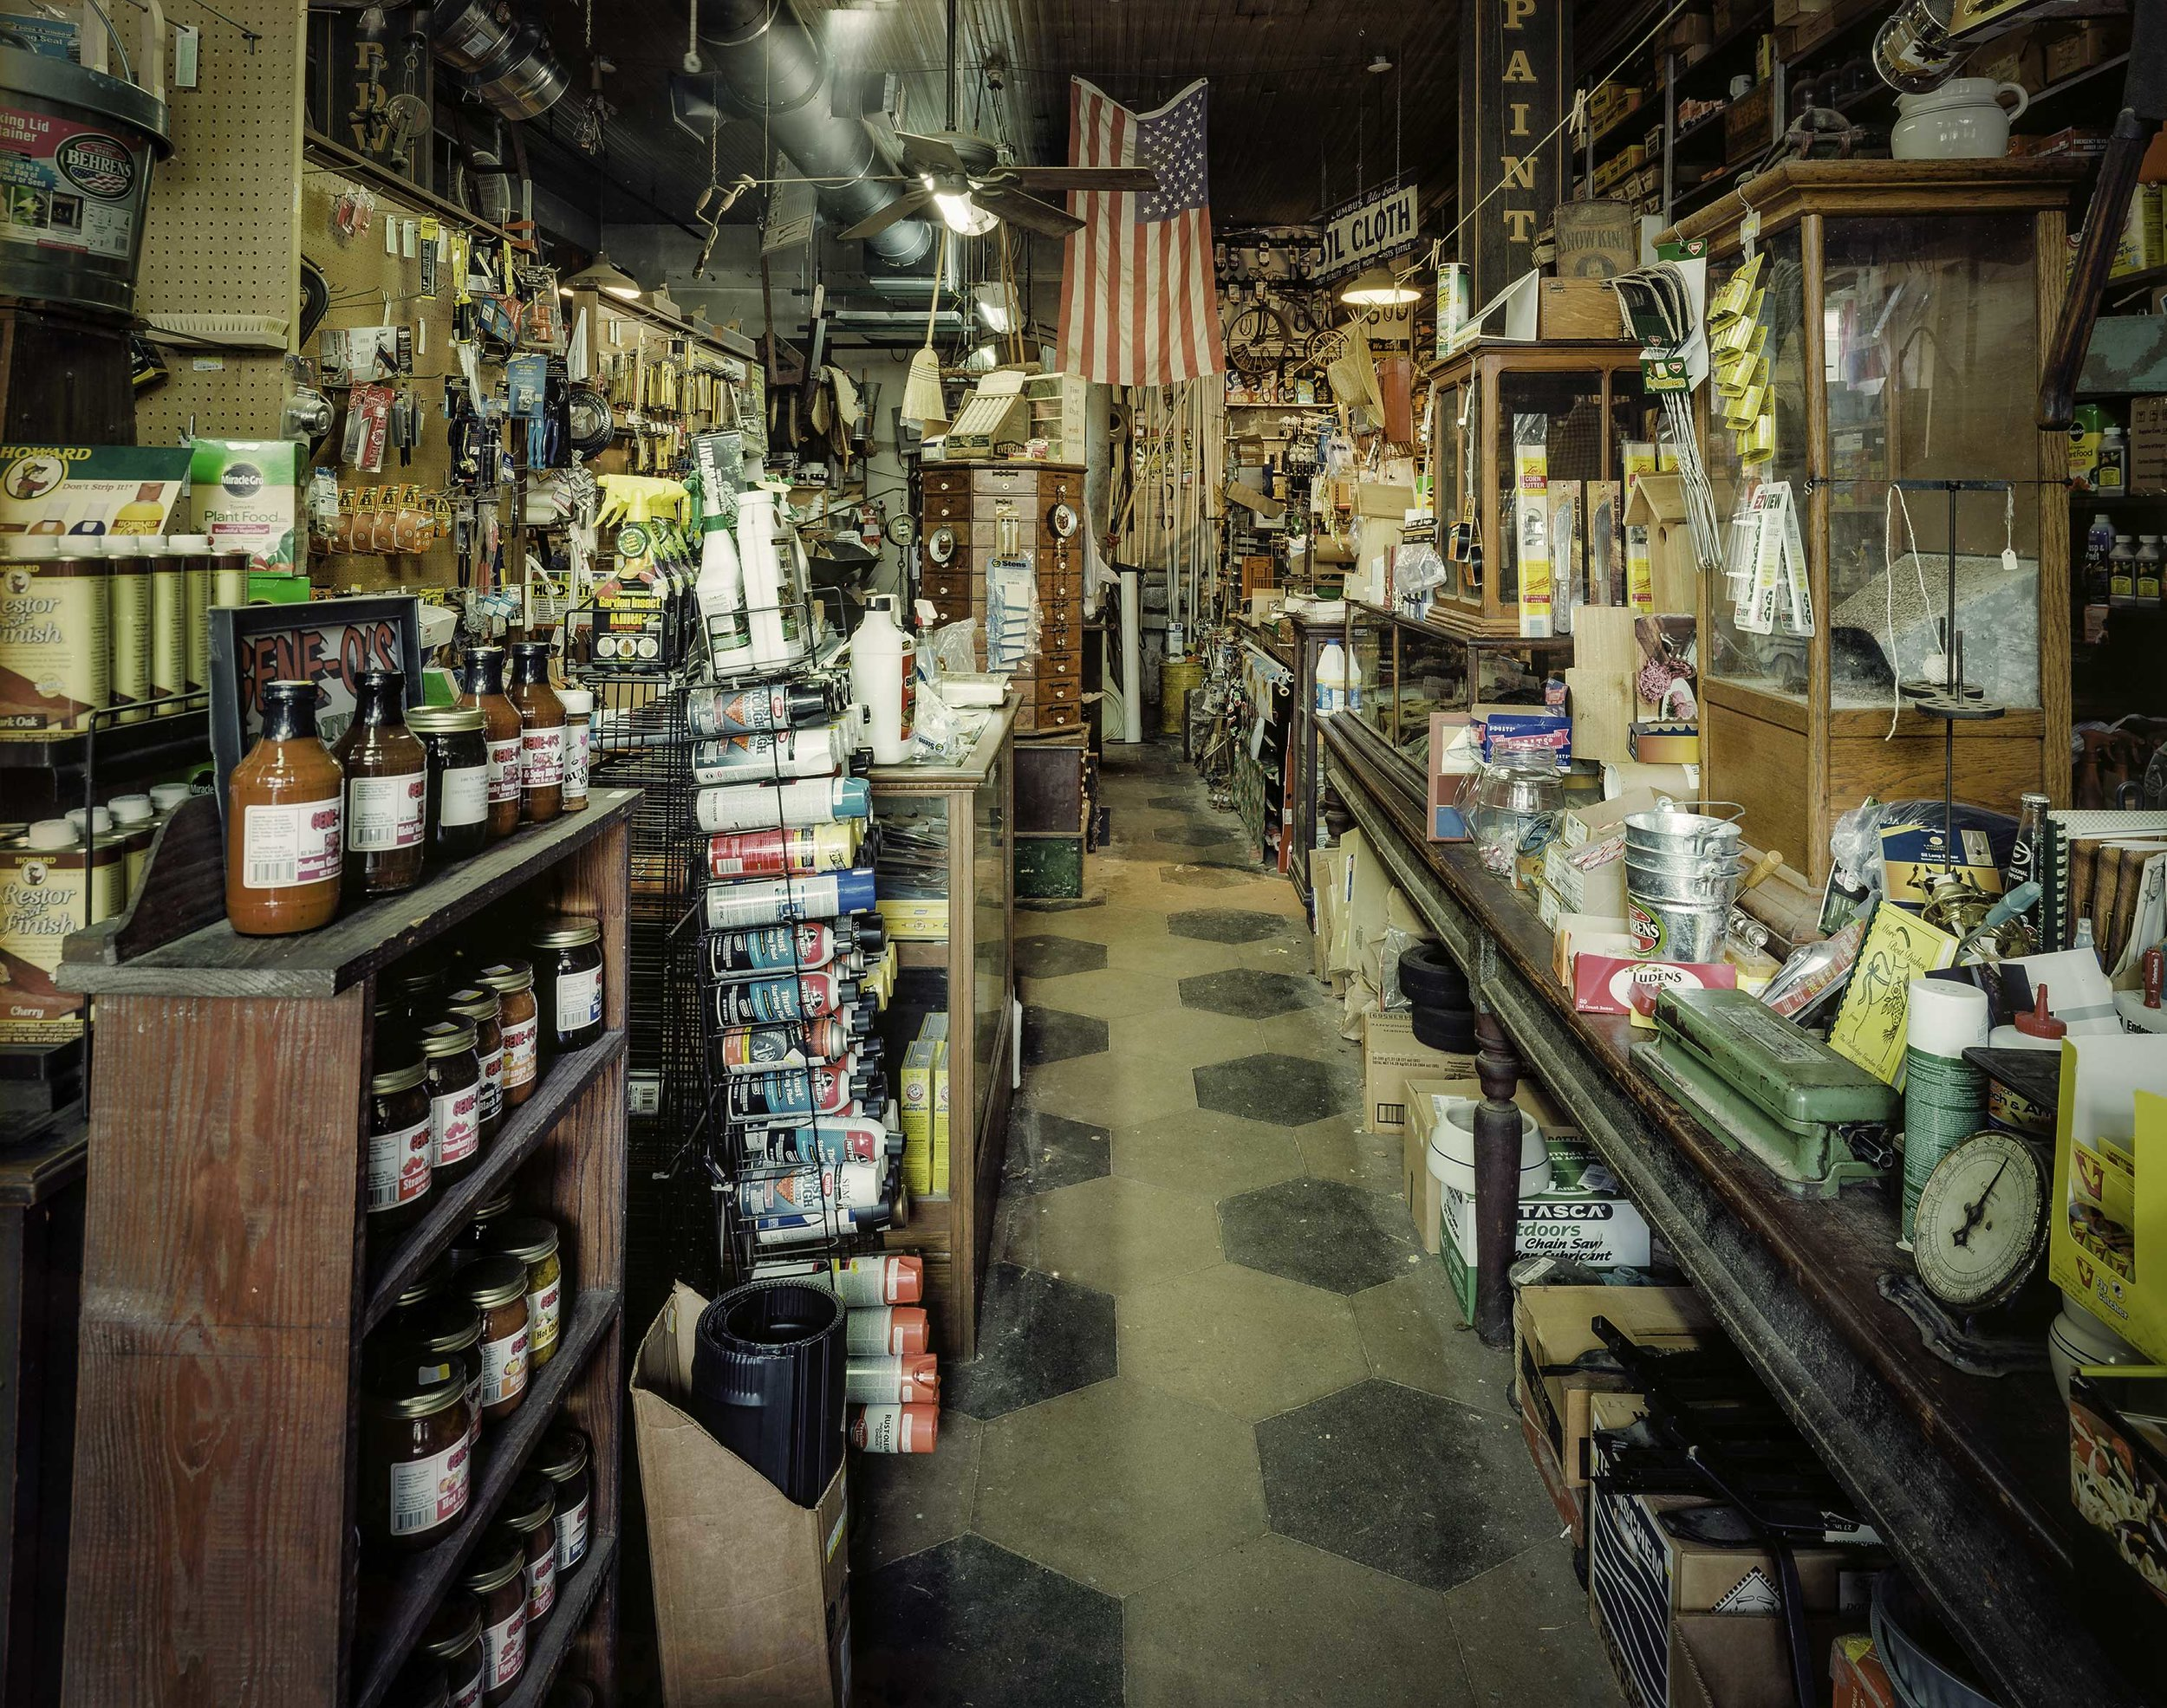 """""""  Rutledge Hardware"""" by Charles Mintz, 32 x 40in, Inkjet Print From Scanned FIlm (2015), $1000 